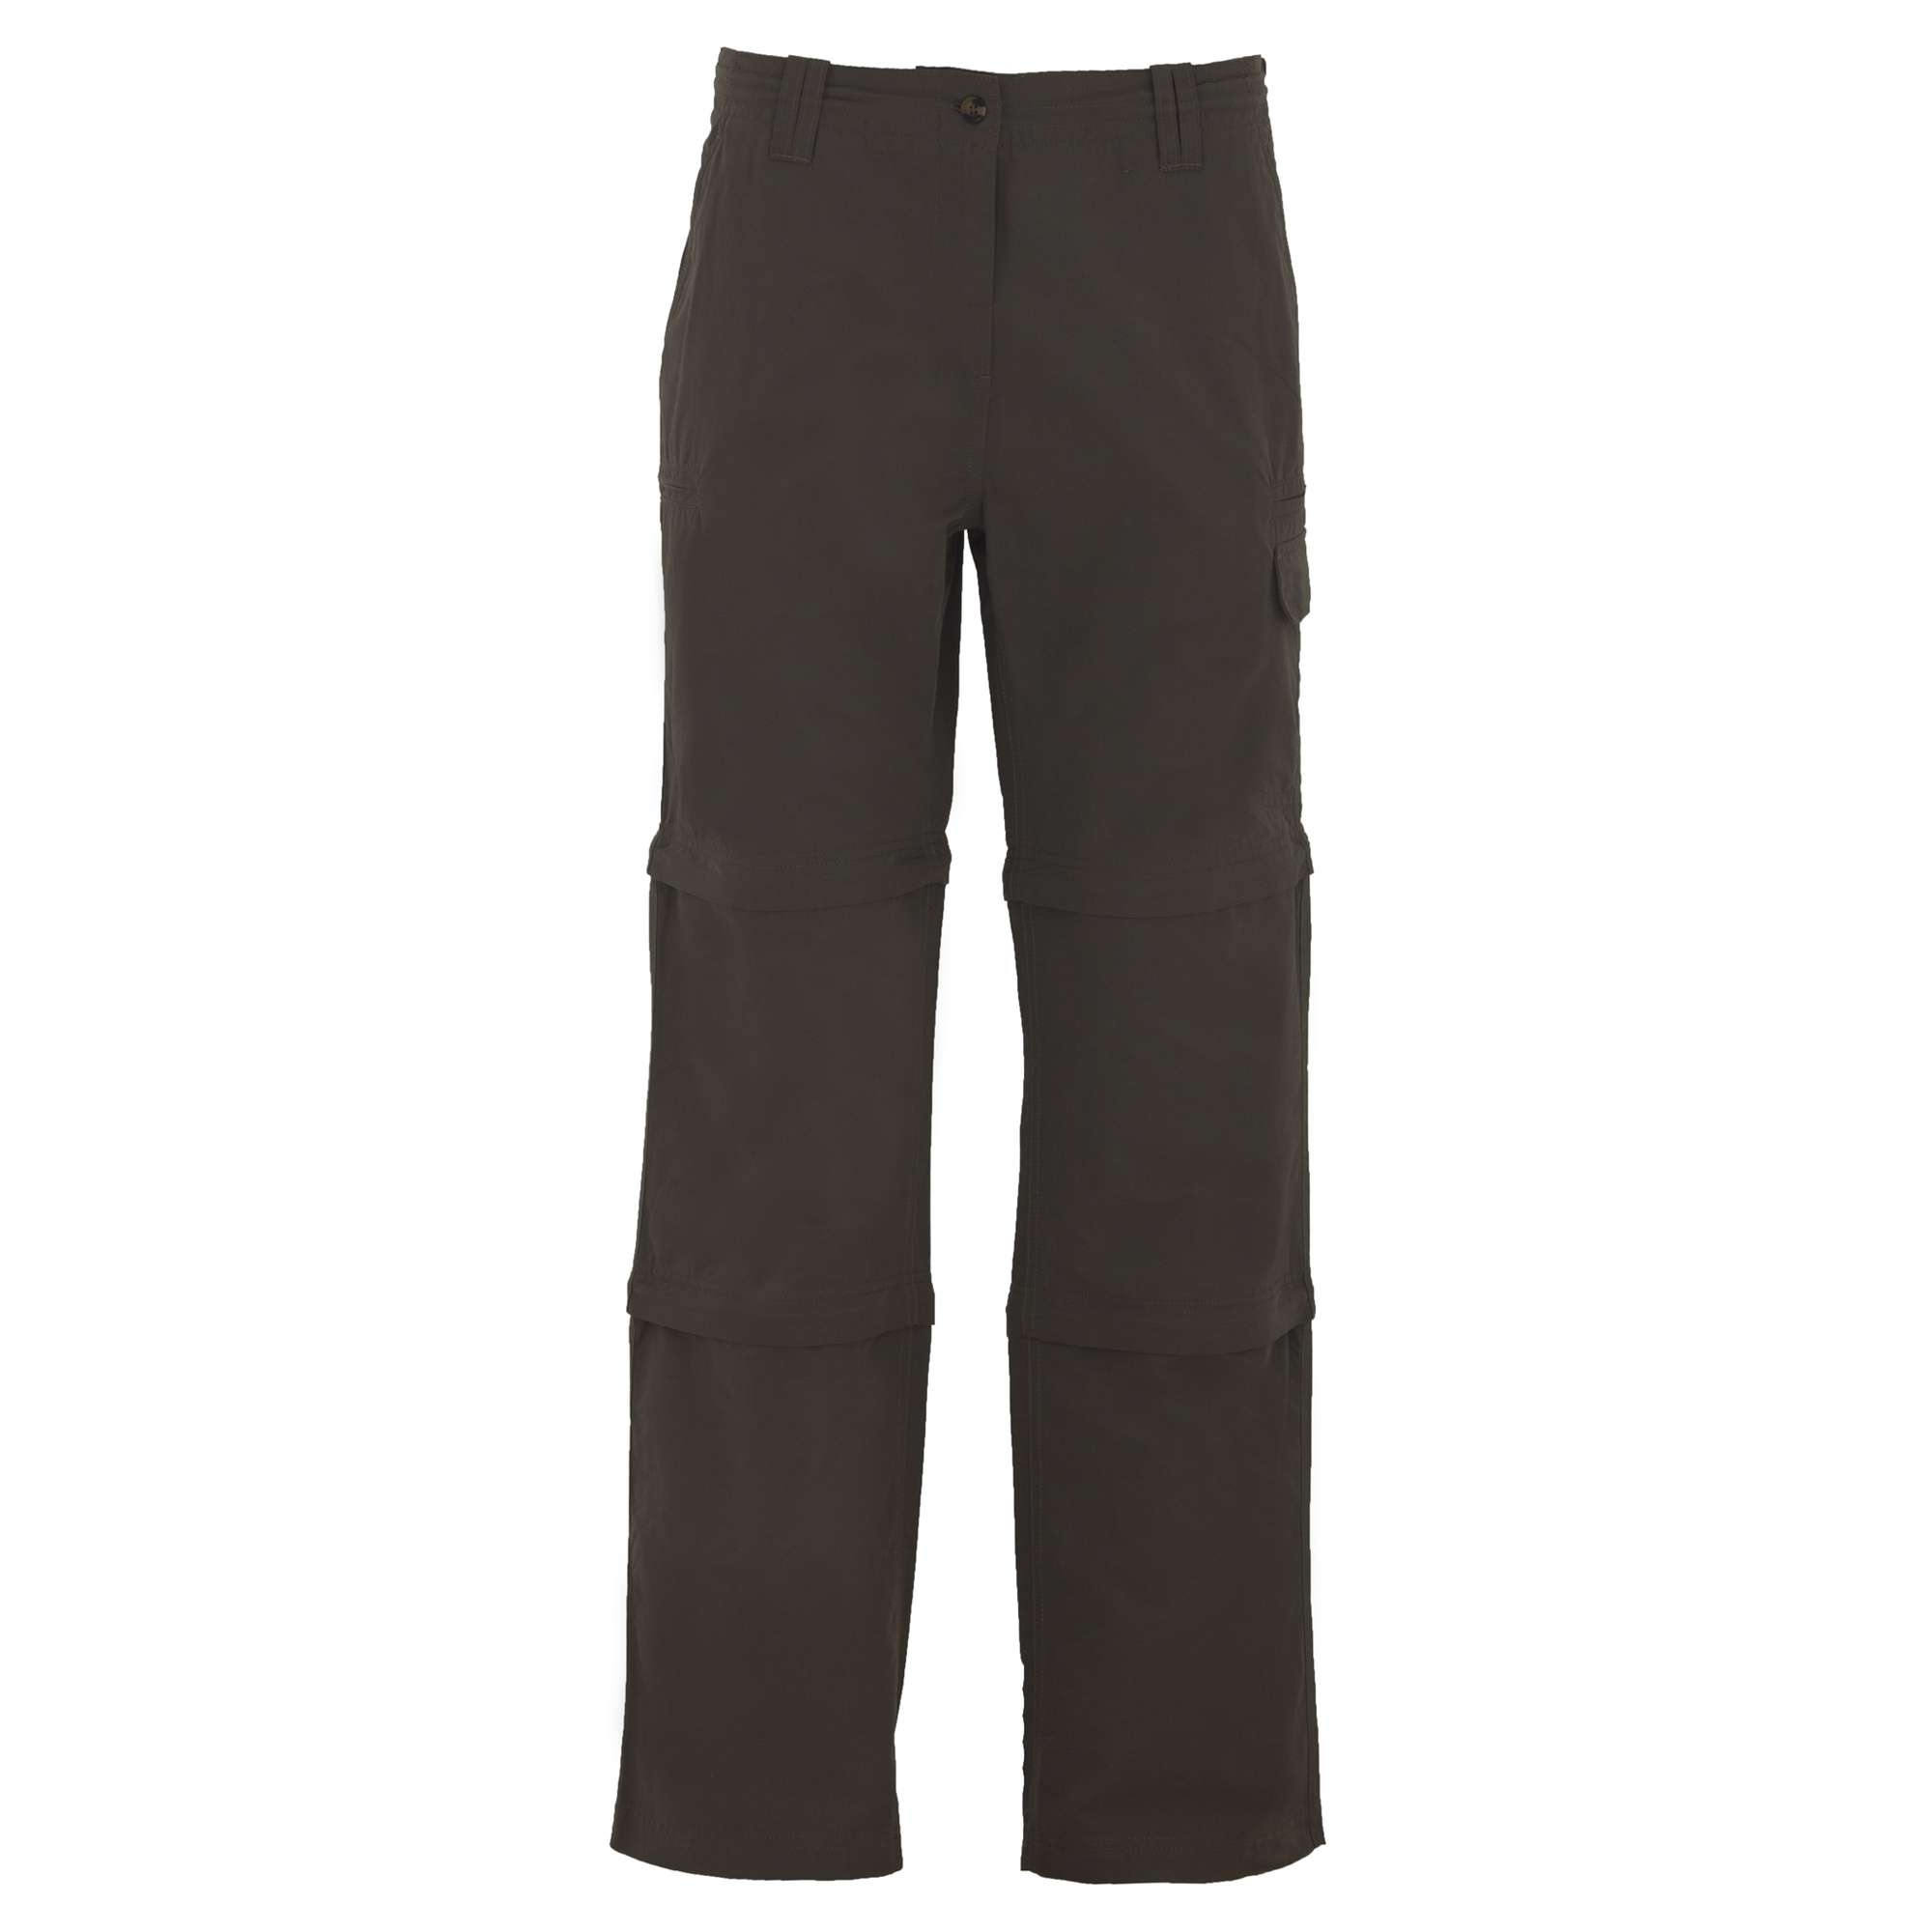 PETER STORM Women's Travel Wishing 3 In 1 Trousers